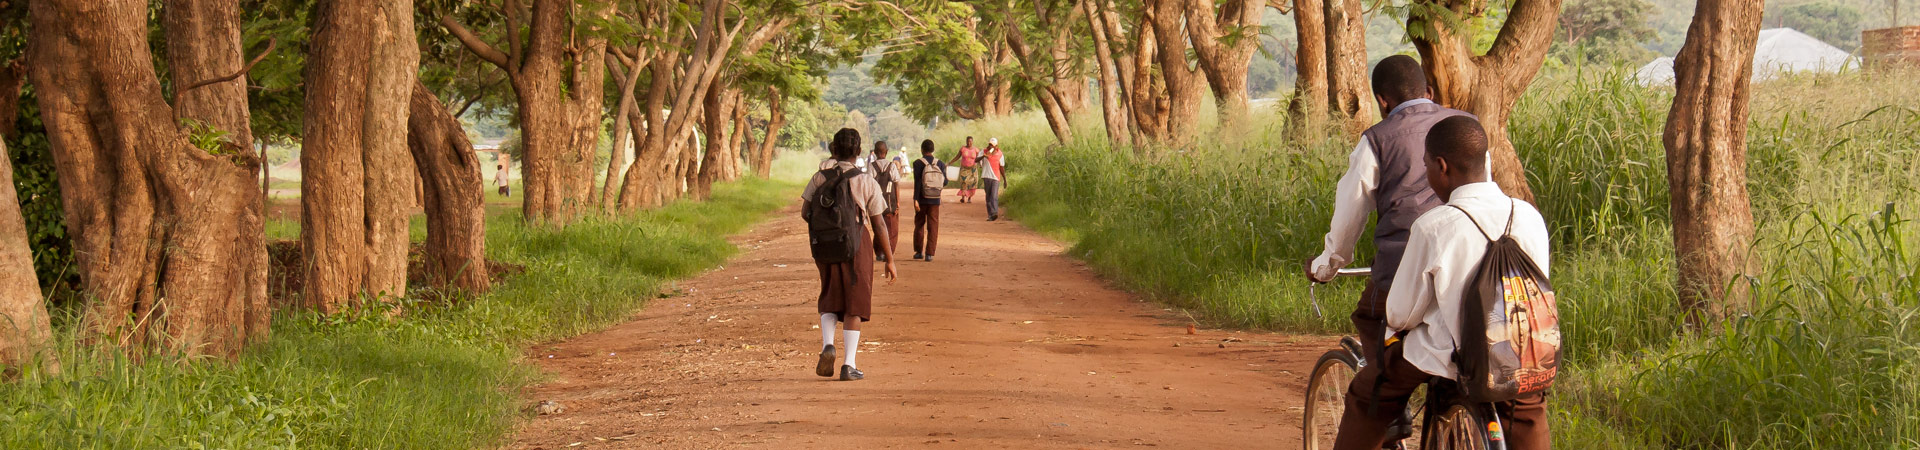 children going to school in rural Zambia